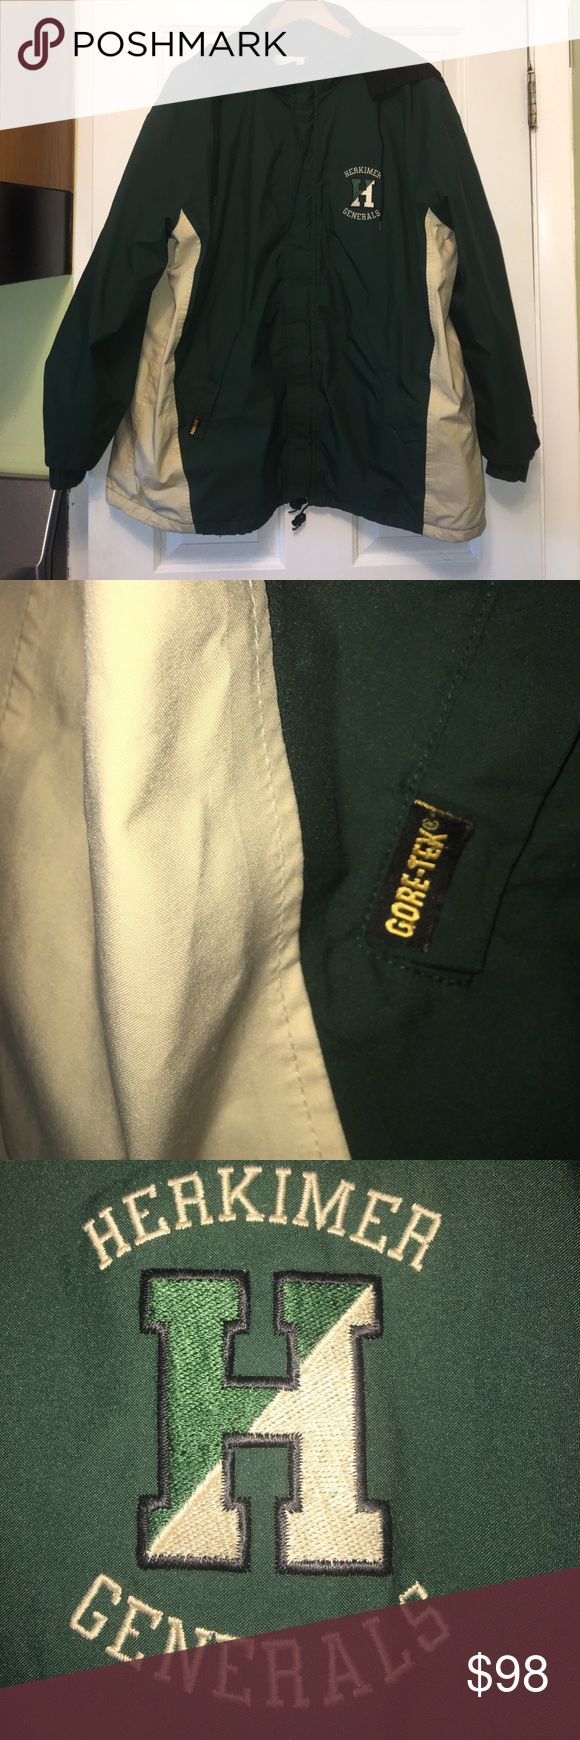 Men's XL Boathouse/Gore-Tex jacket Men's XL forest green & cream Boathouse/Gore-Tex jacket. This is used but in great shape! Has some marks on left side on cream part of jacket but not very noticeable. See pic.  It has the college team my husband coaches at embroidered on the left chest. Which is one of the top men's soccer programs in the country with 10 national championships!  This is a great price for a top of the line rain proof jacket!! Boathouse Jackets & Coats